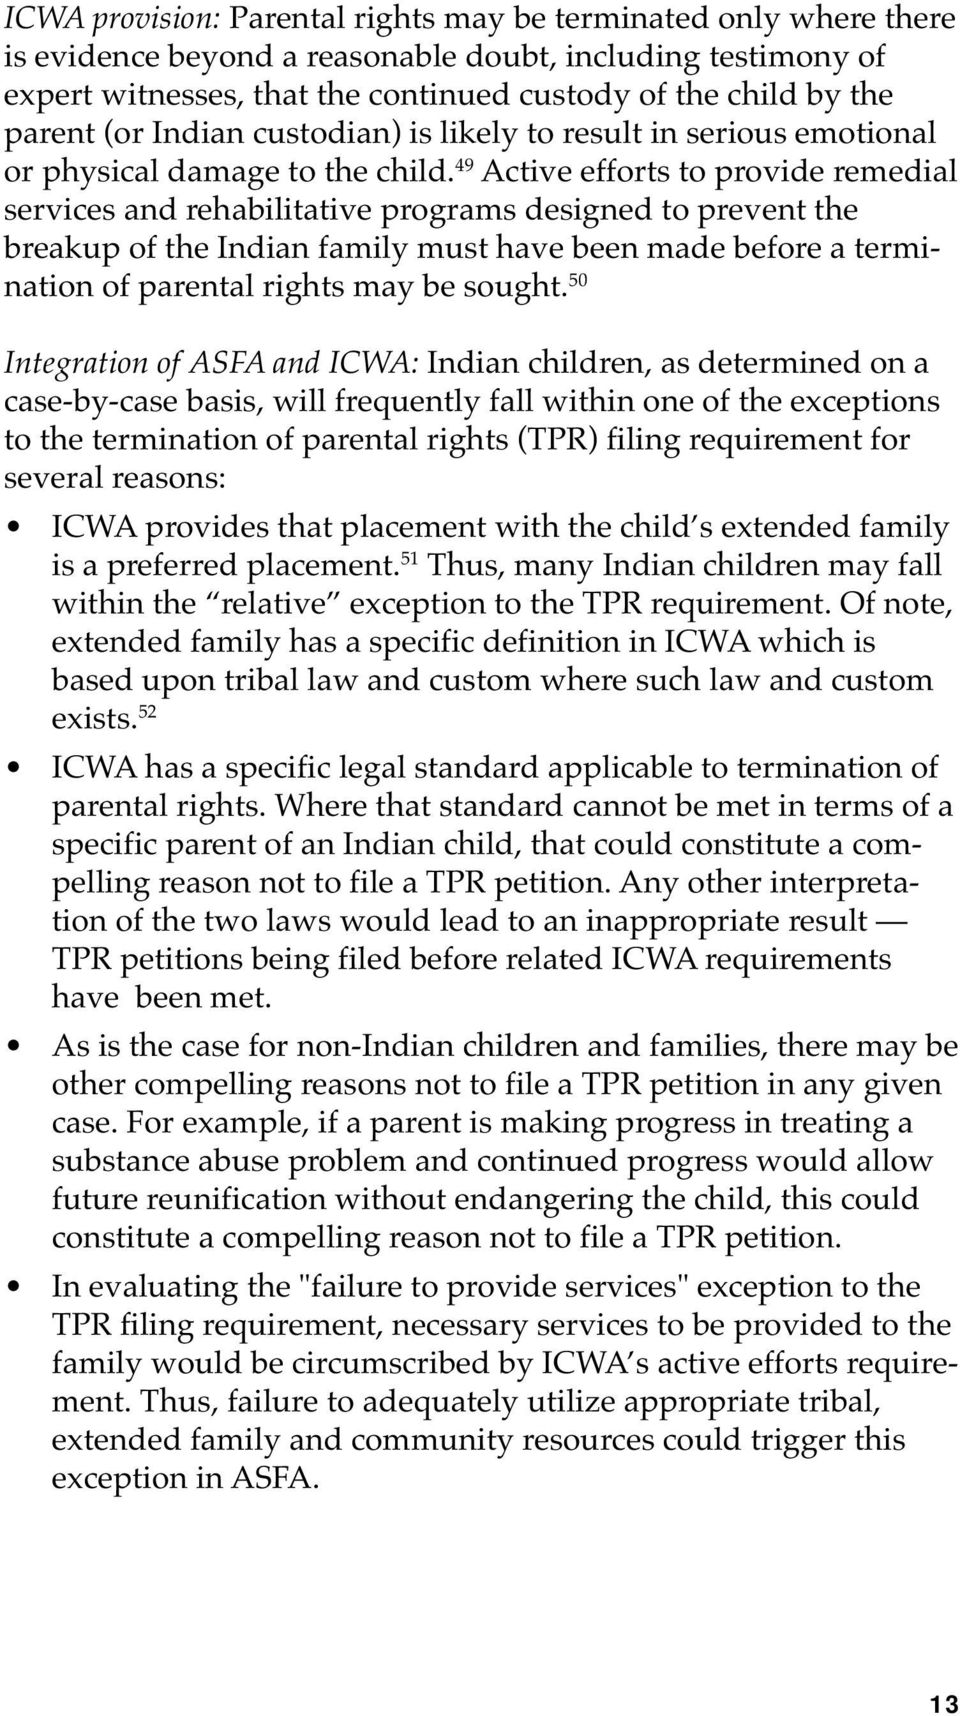 49 Active efforts to provide remedial services and rehabilitative programs designed to prevent the breakup of the Indian family must have been made before a termination of parental rights may be